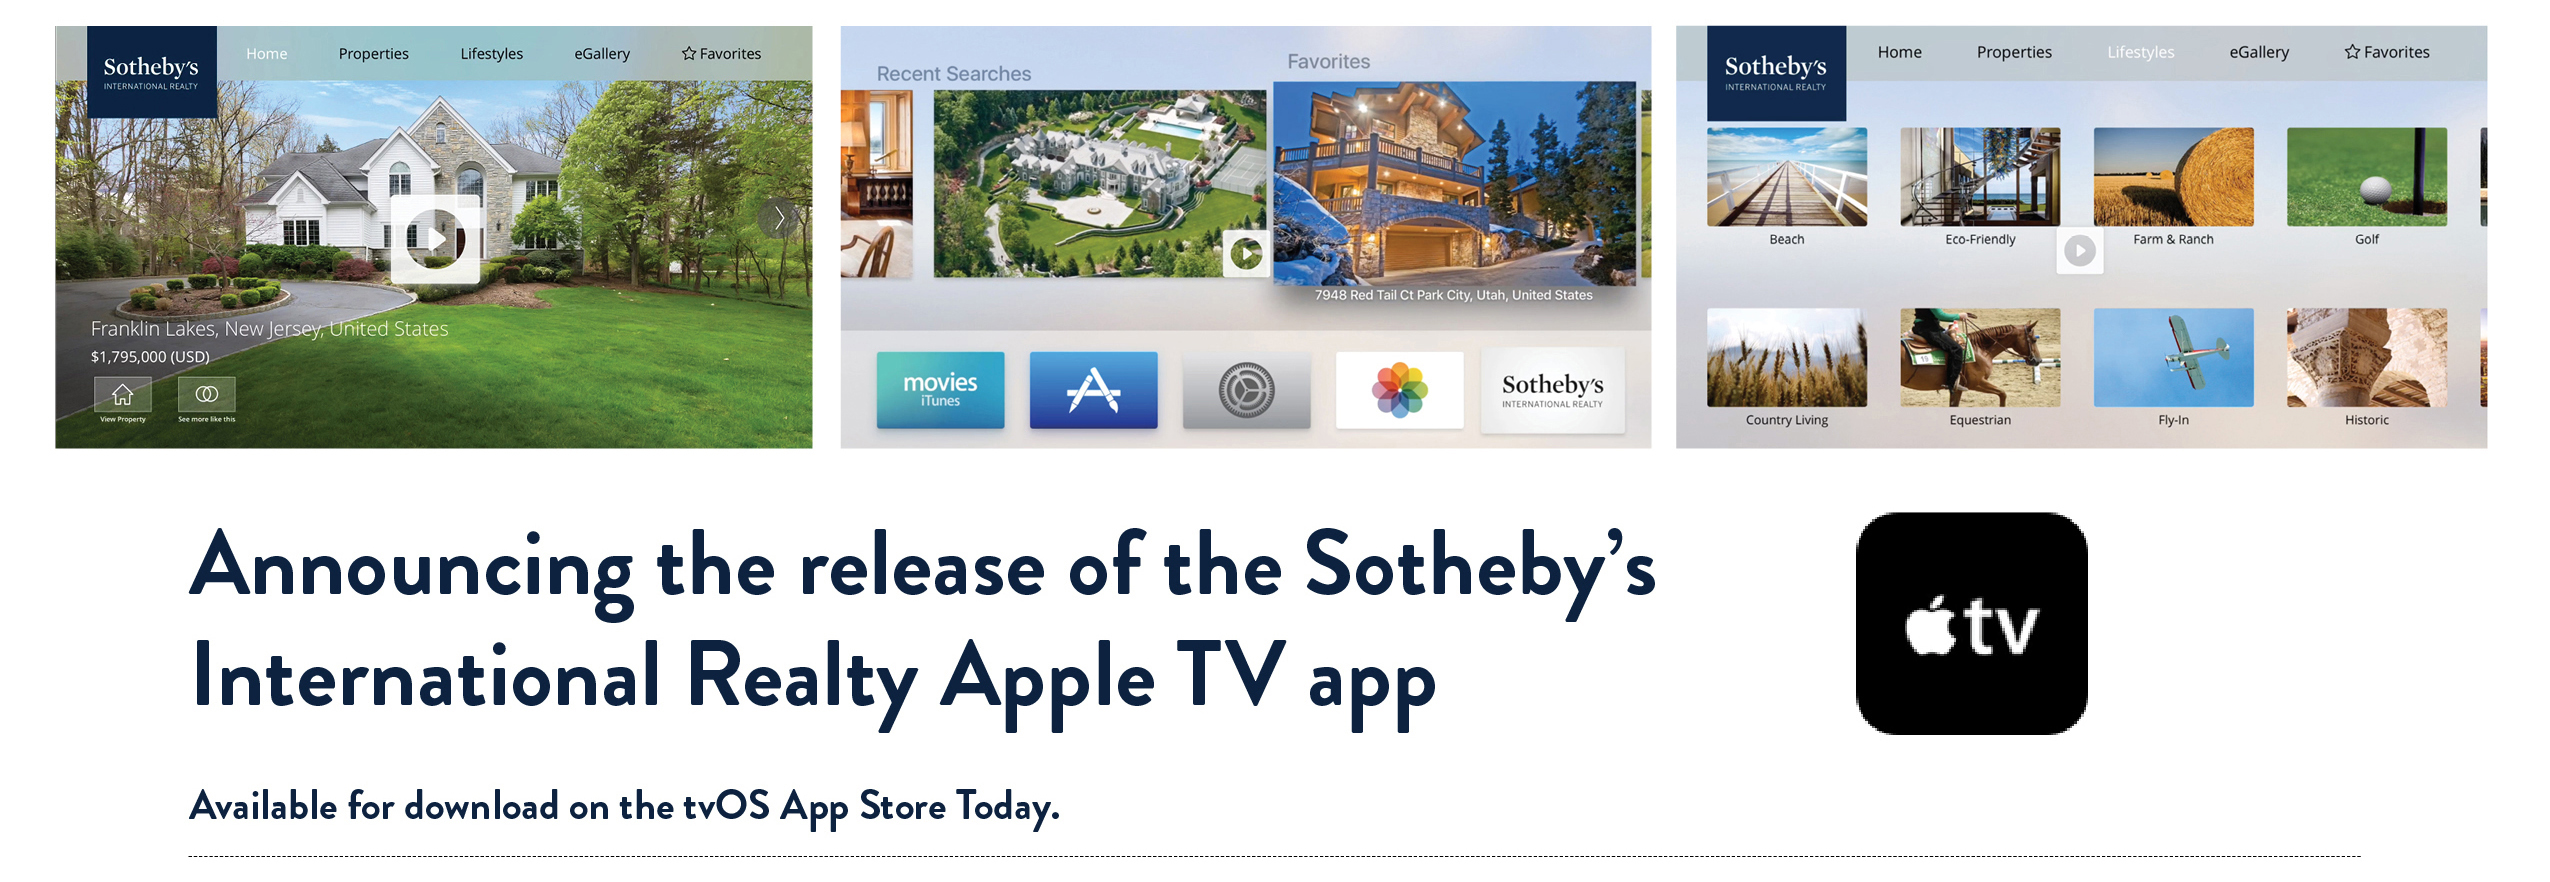 Sotheby's International Realty Launches tvOS app